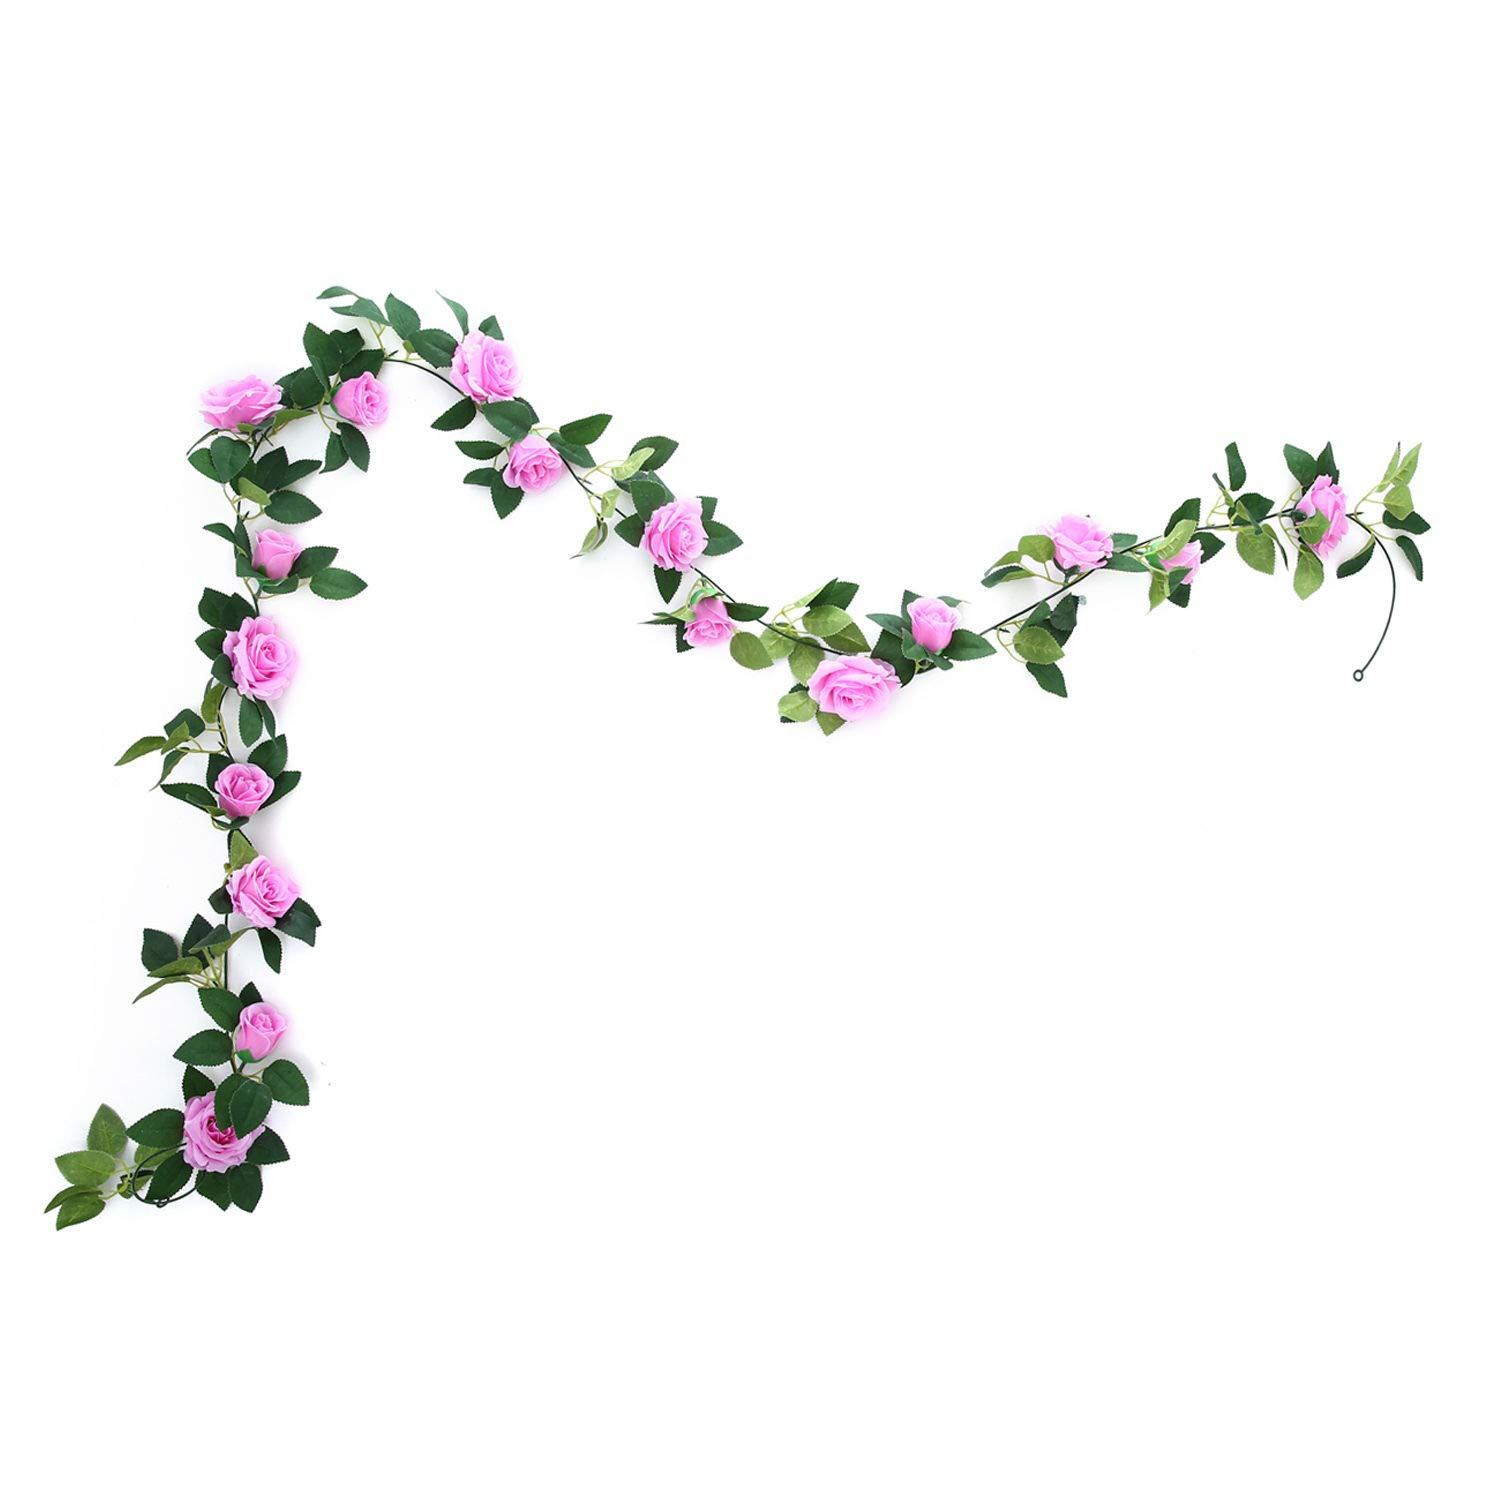 MEHELANY Artificial Rose Vine Flowers with Green Leaves 7.5ft Fake Silk Rose Hanging Vine Flowers Garland Ivy Plants for Home Wedding Party Garden Wall Decoration (Cream) (prule, 1)…